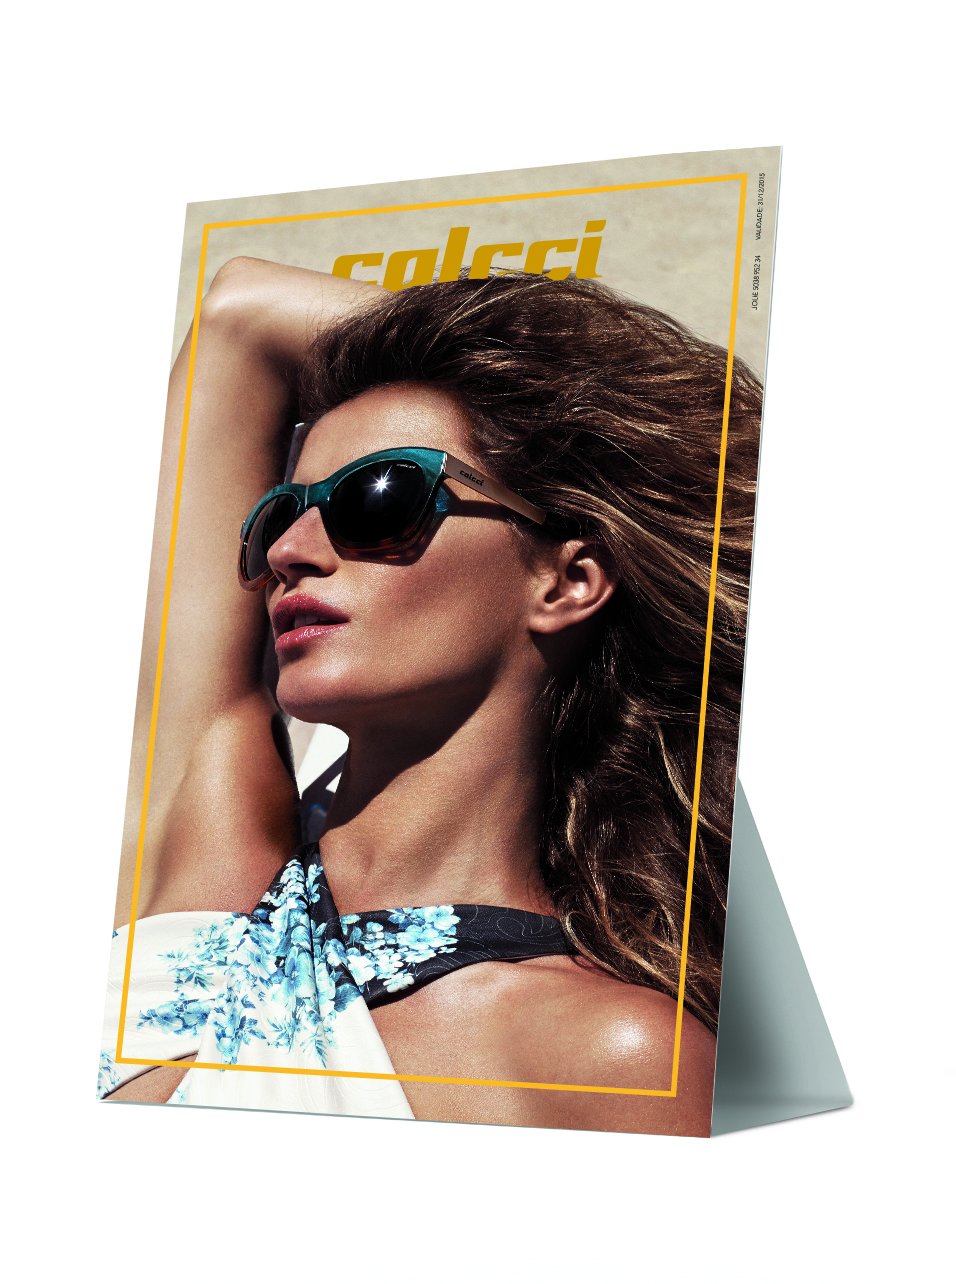 gisele_colcci_pdv_display_v3_r0